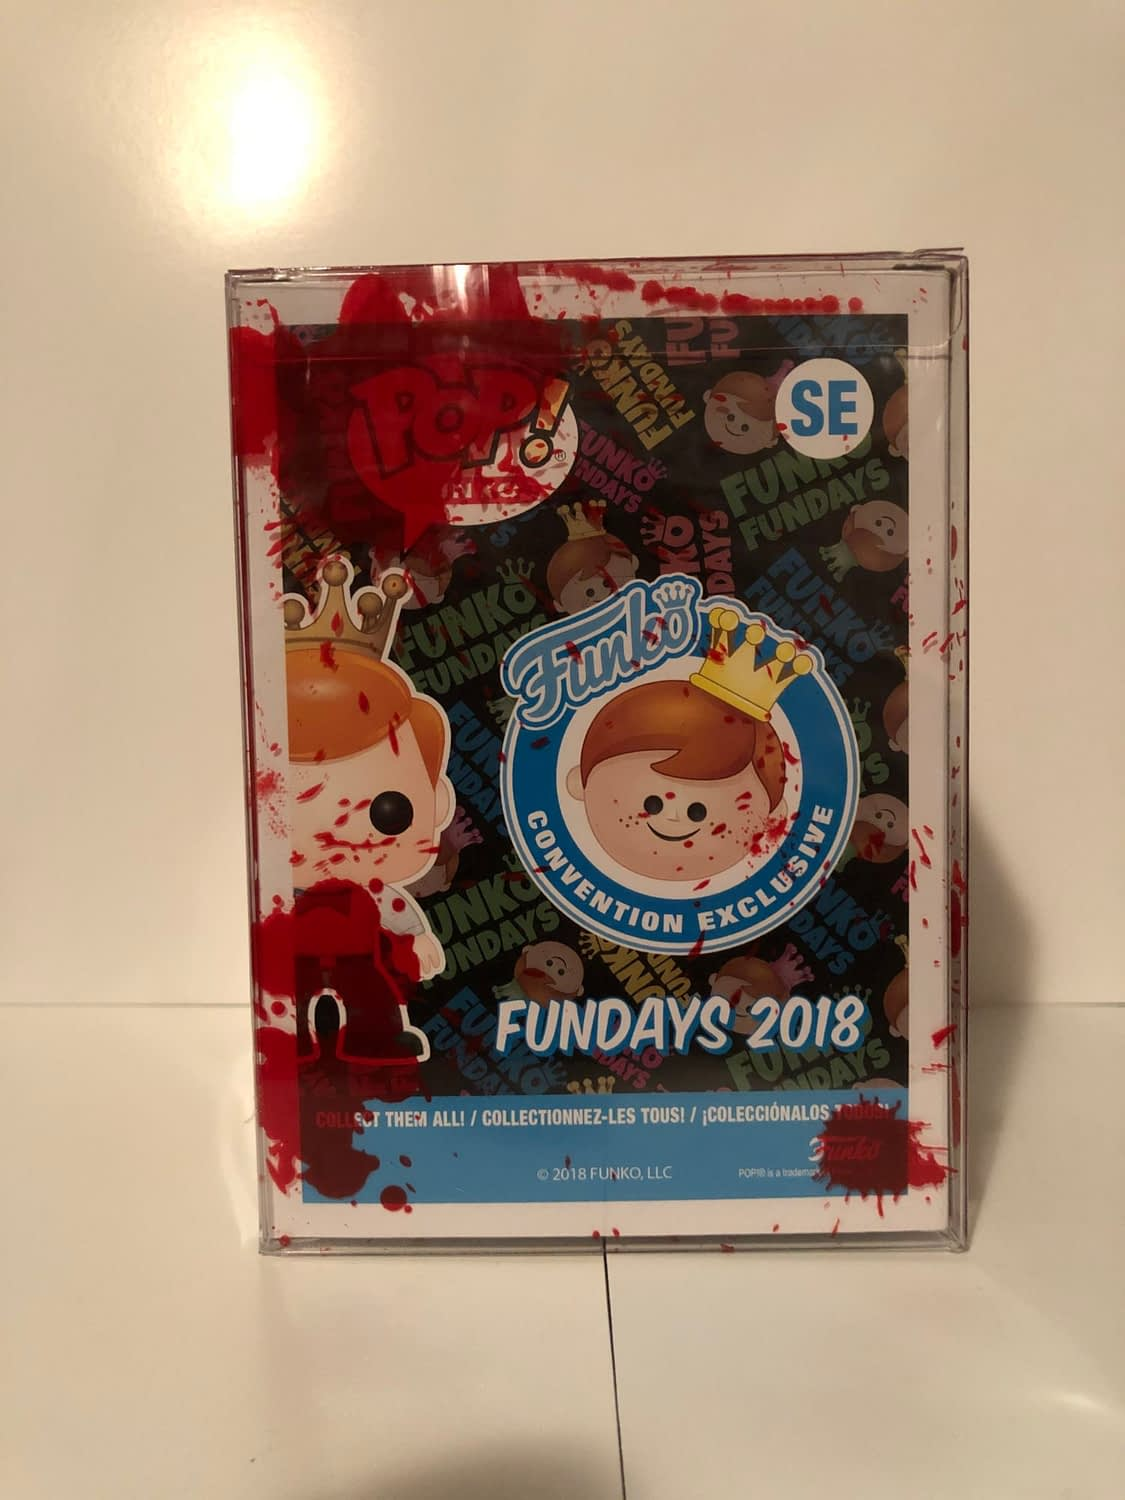 Blood Splatter Protectors Are Killer for Your Funko Collection [Review]